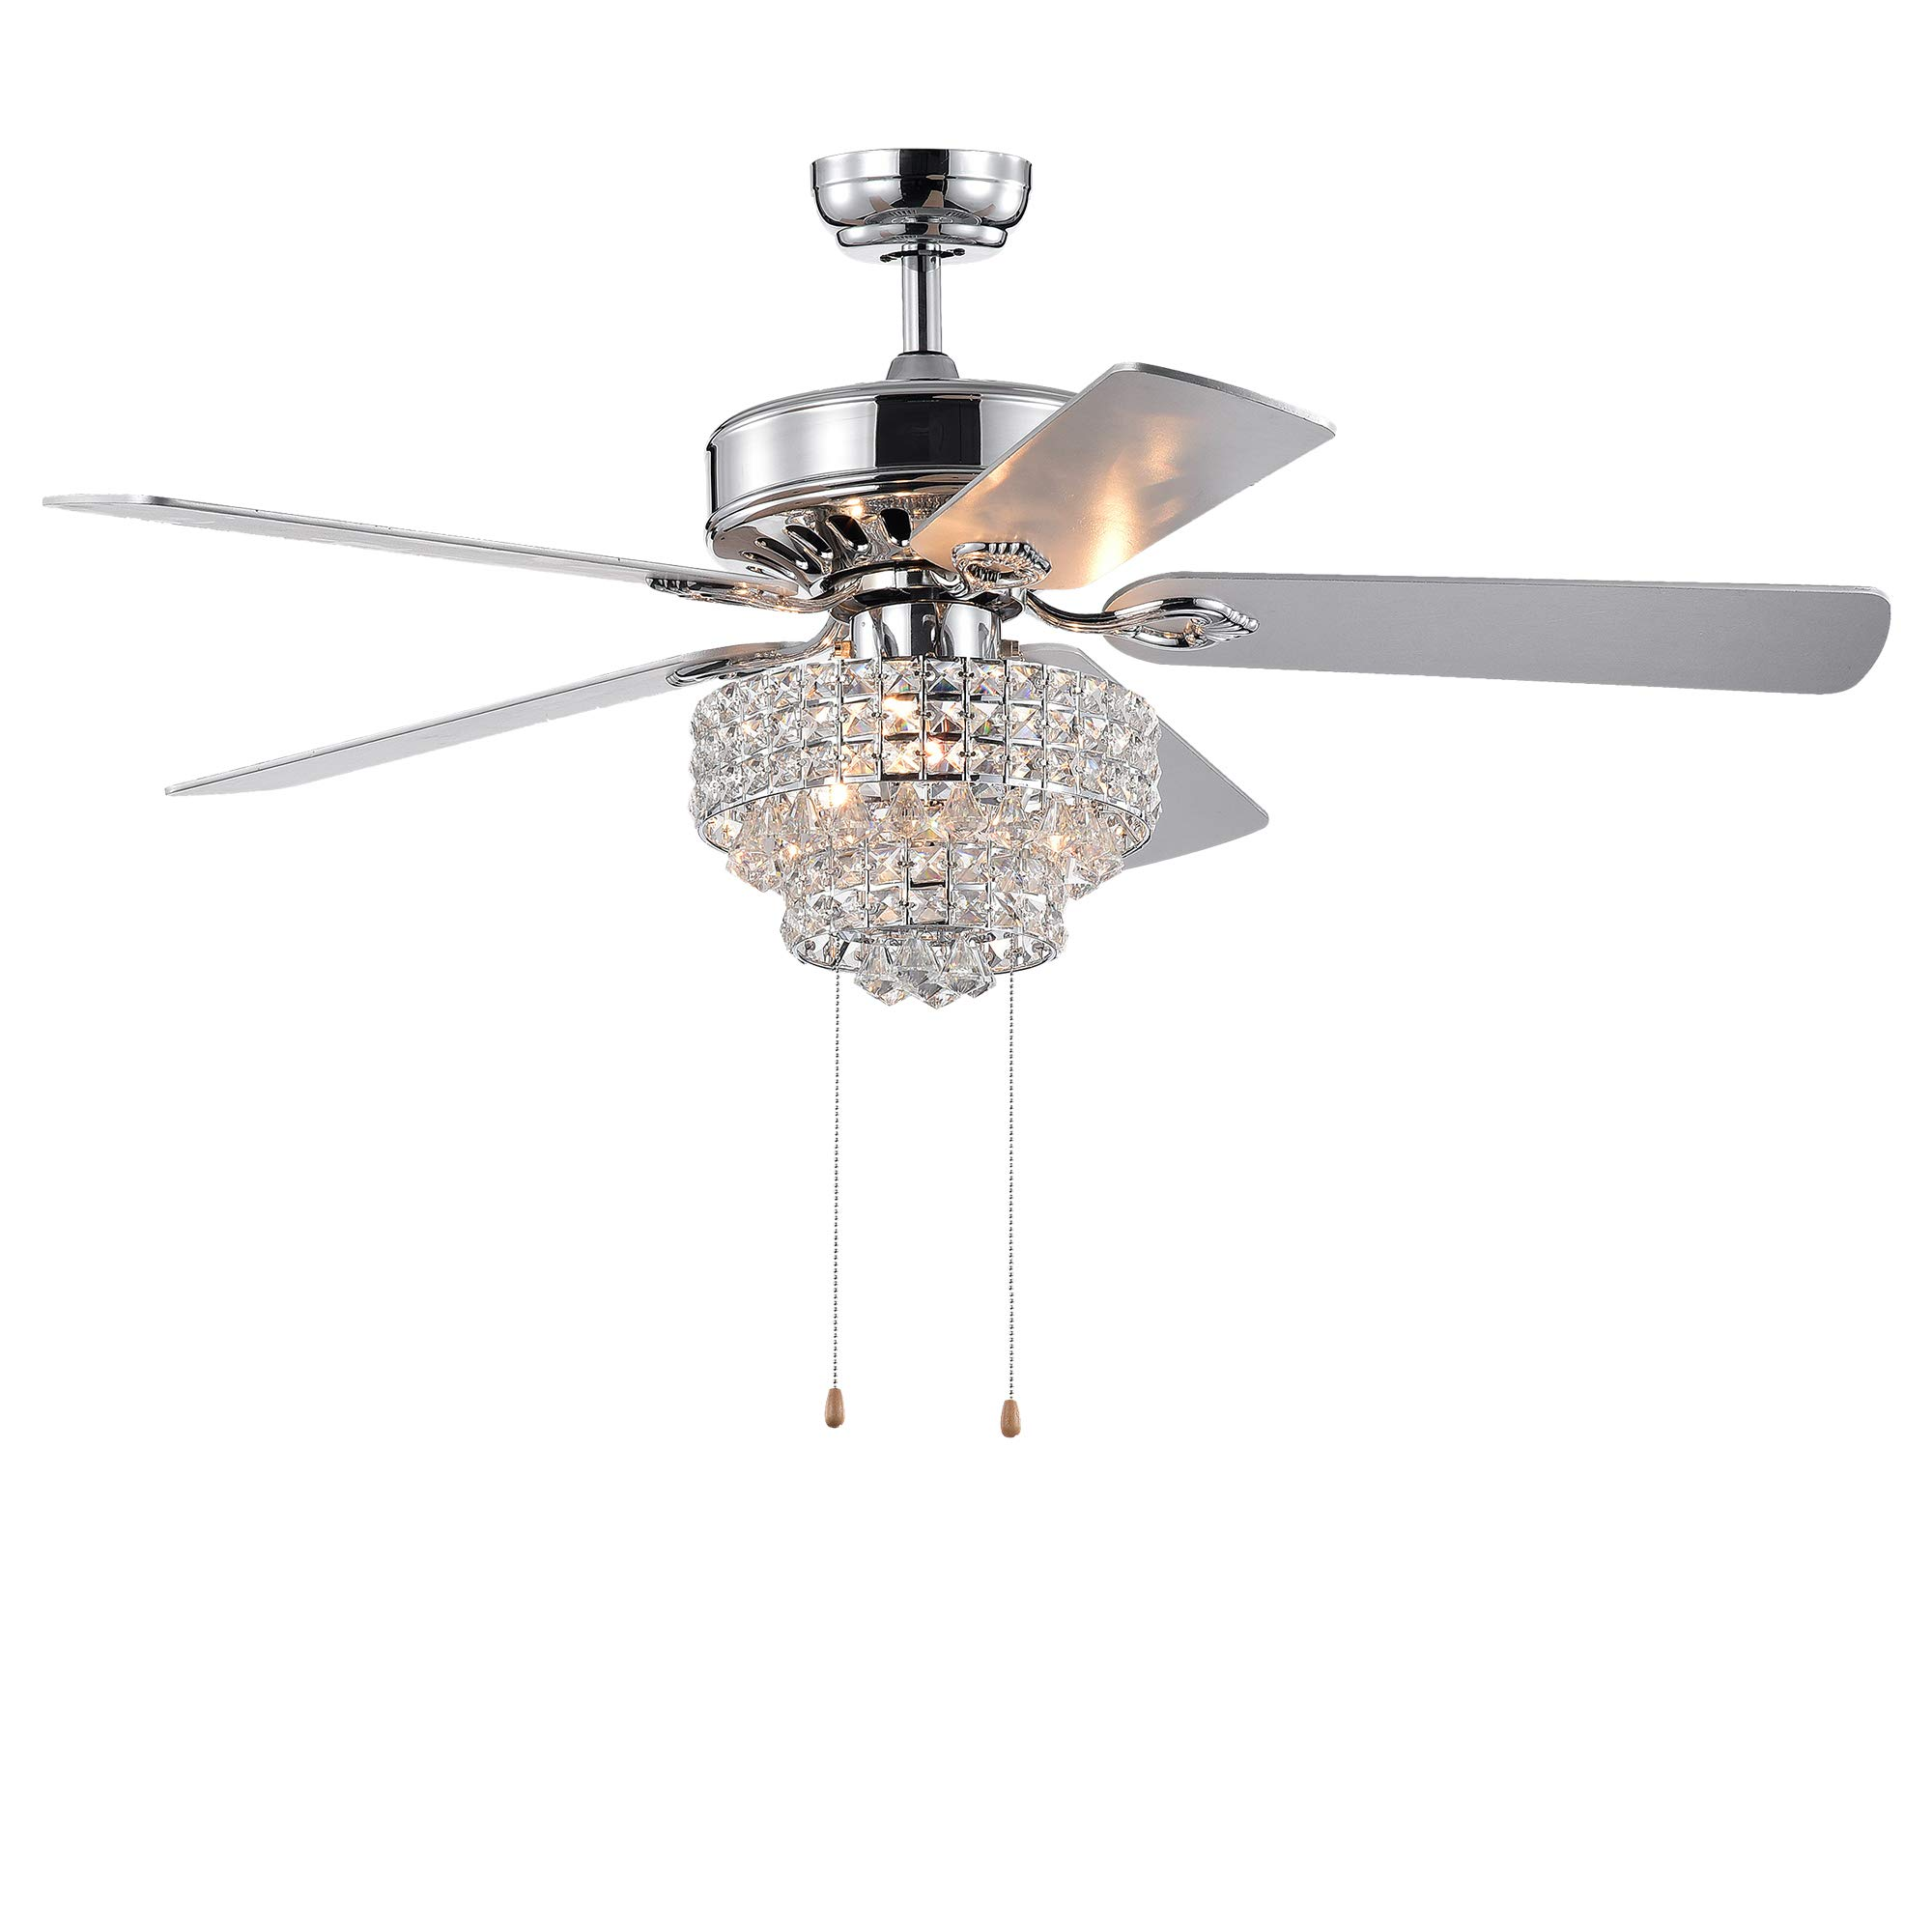 Warehouse of Tiffany CFL-8342CH Bryanya 5-Blade 52-Inch Chrome Lighted Crystal Shade (Optional Remote) Ceiling Fan, Silver